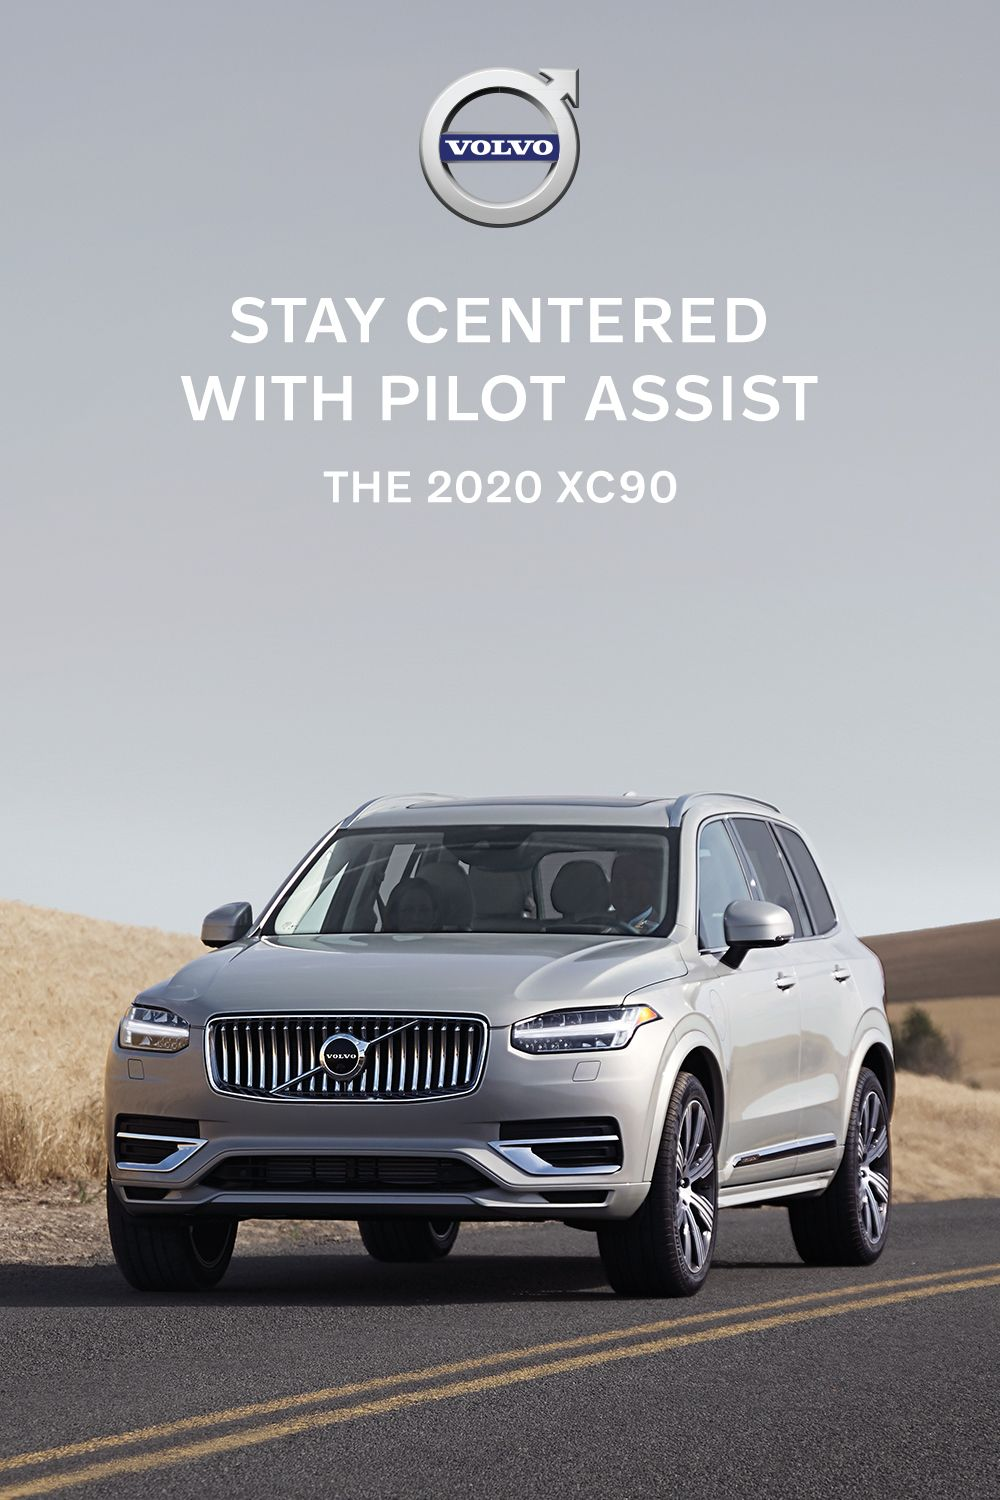 The New Volvo Xc90 With Pilot Assist Safety Recharged Volvo Xc90 Volvo Luxury Suv